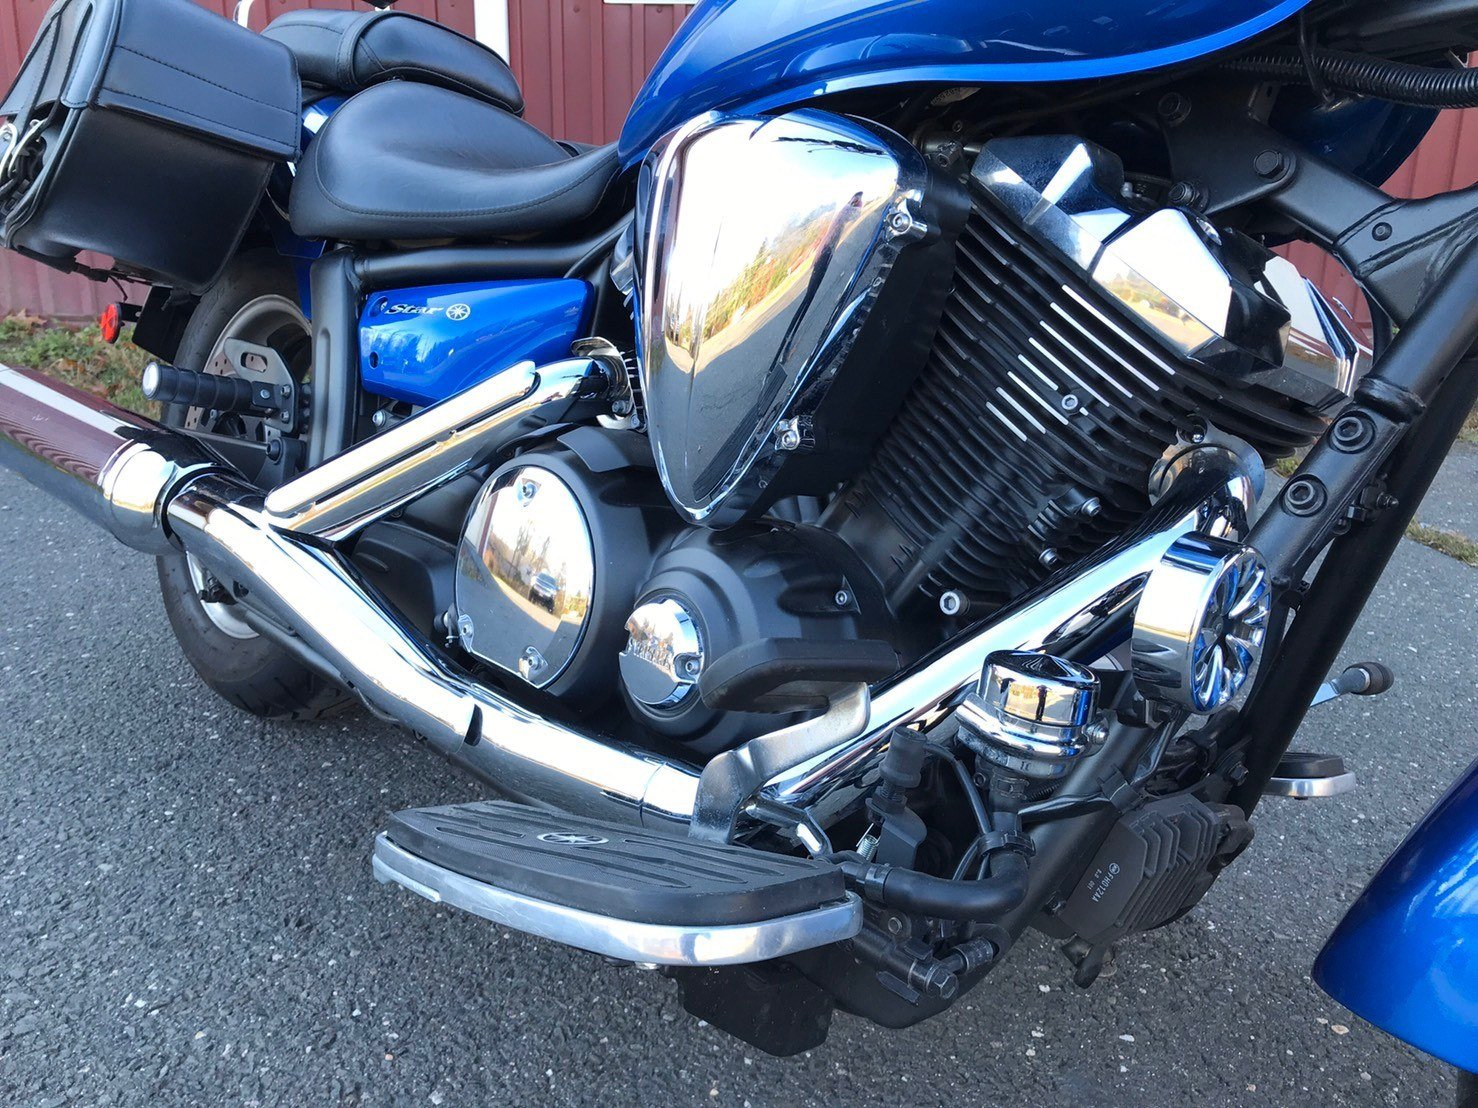 2009 Yamaha V Star 950 in Westfield, Massachusetts - Photo 12